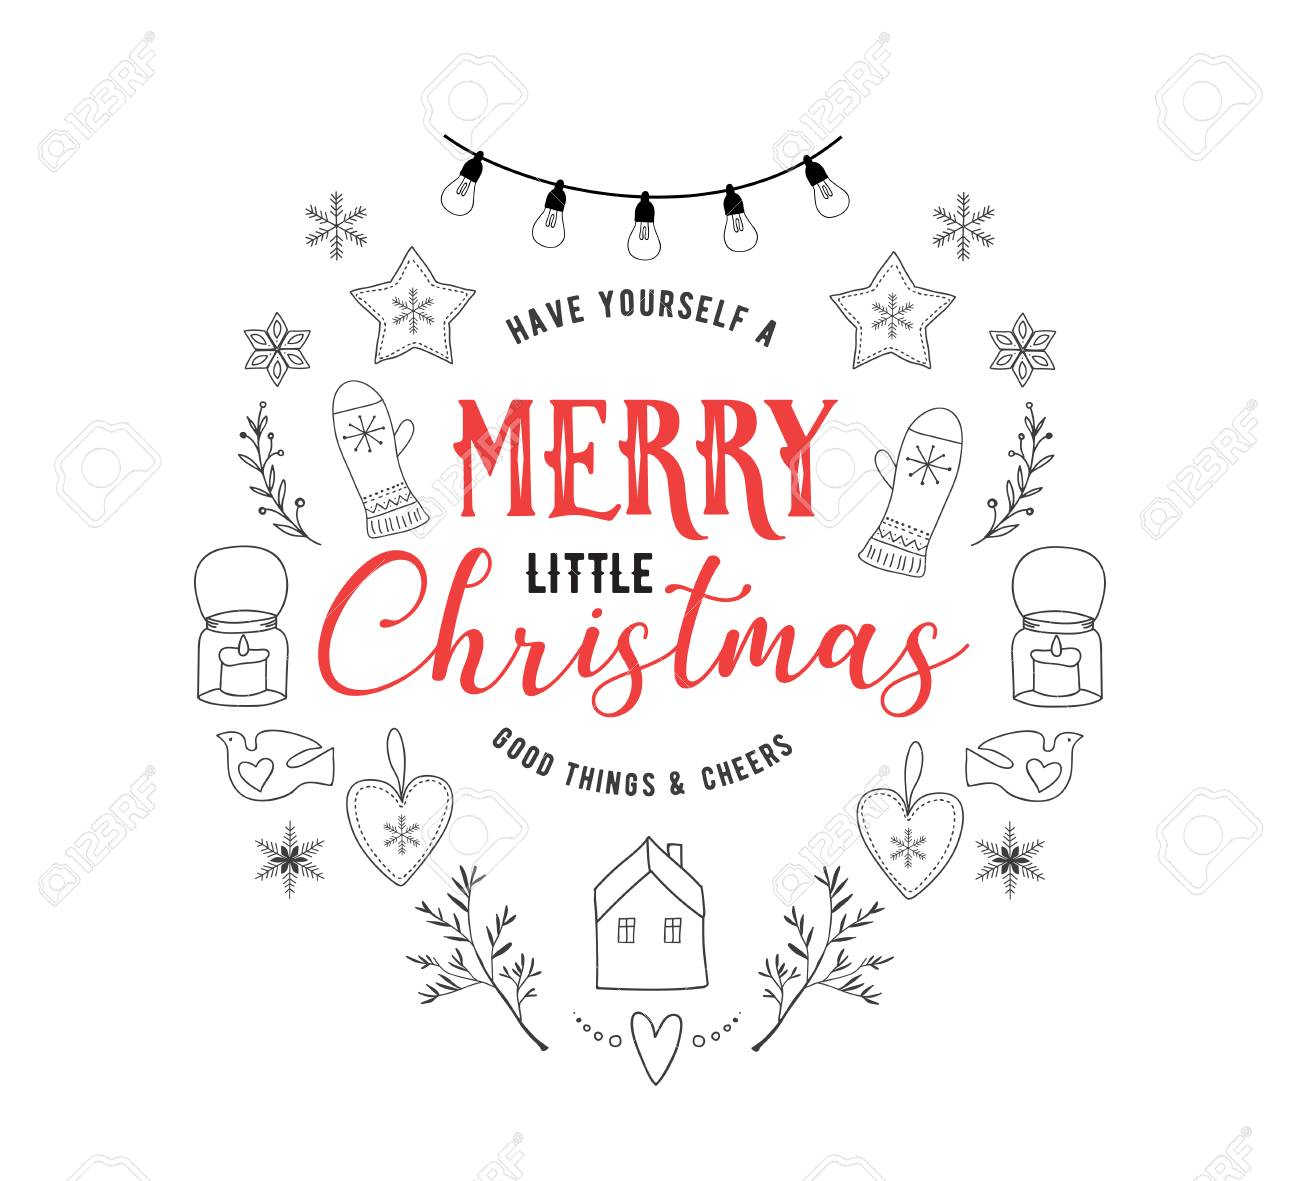 Christmas Card Quotes.Scandinavian Style Simple And Stylish Merry Christmas Greeting